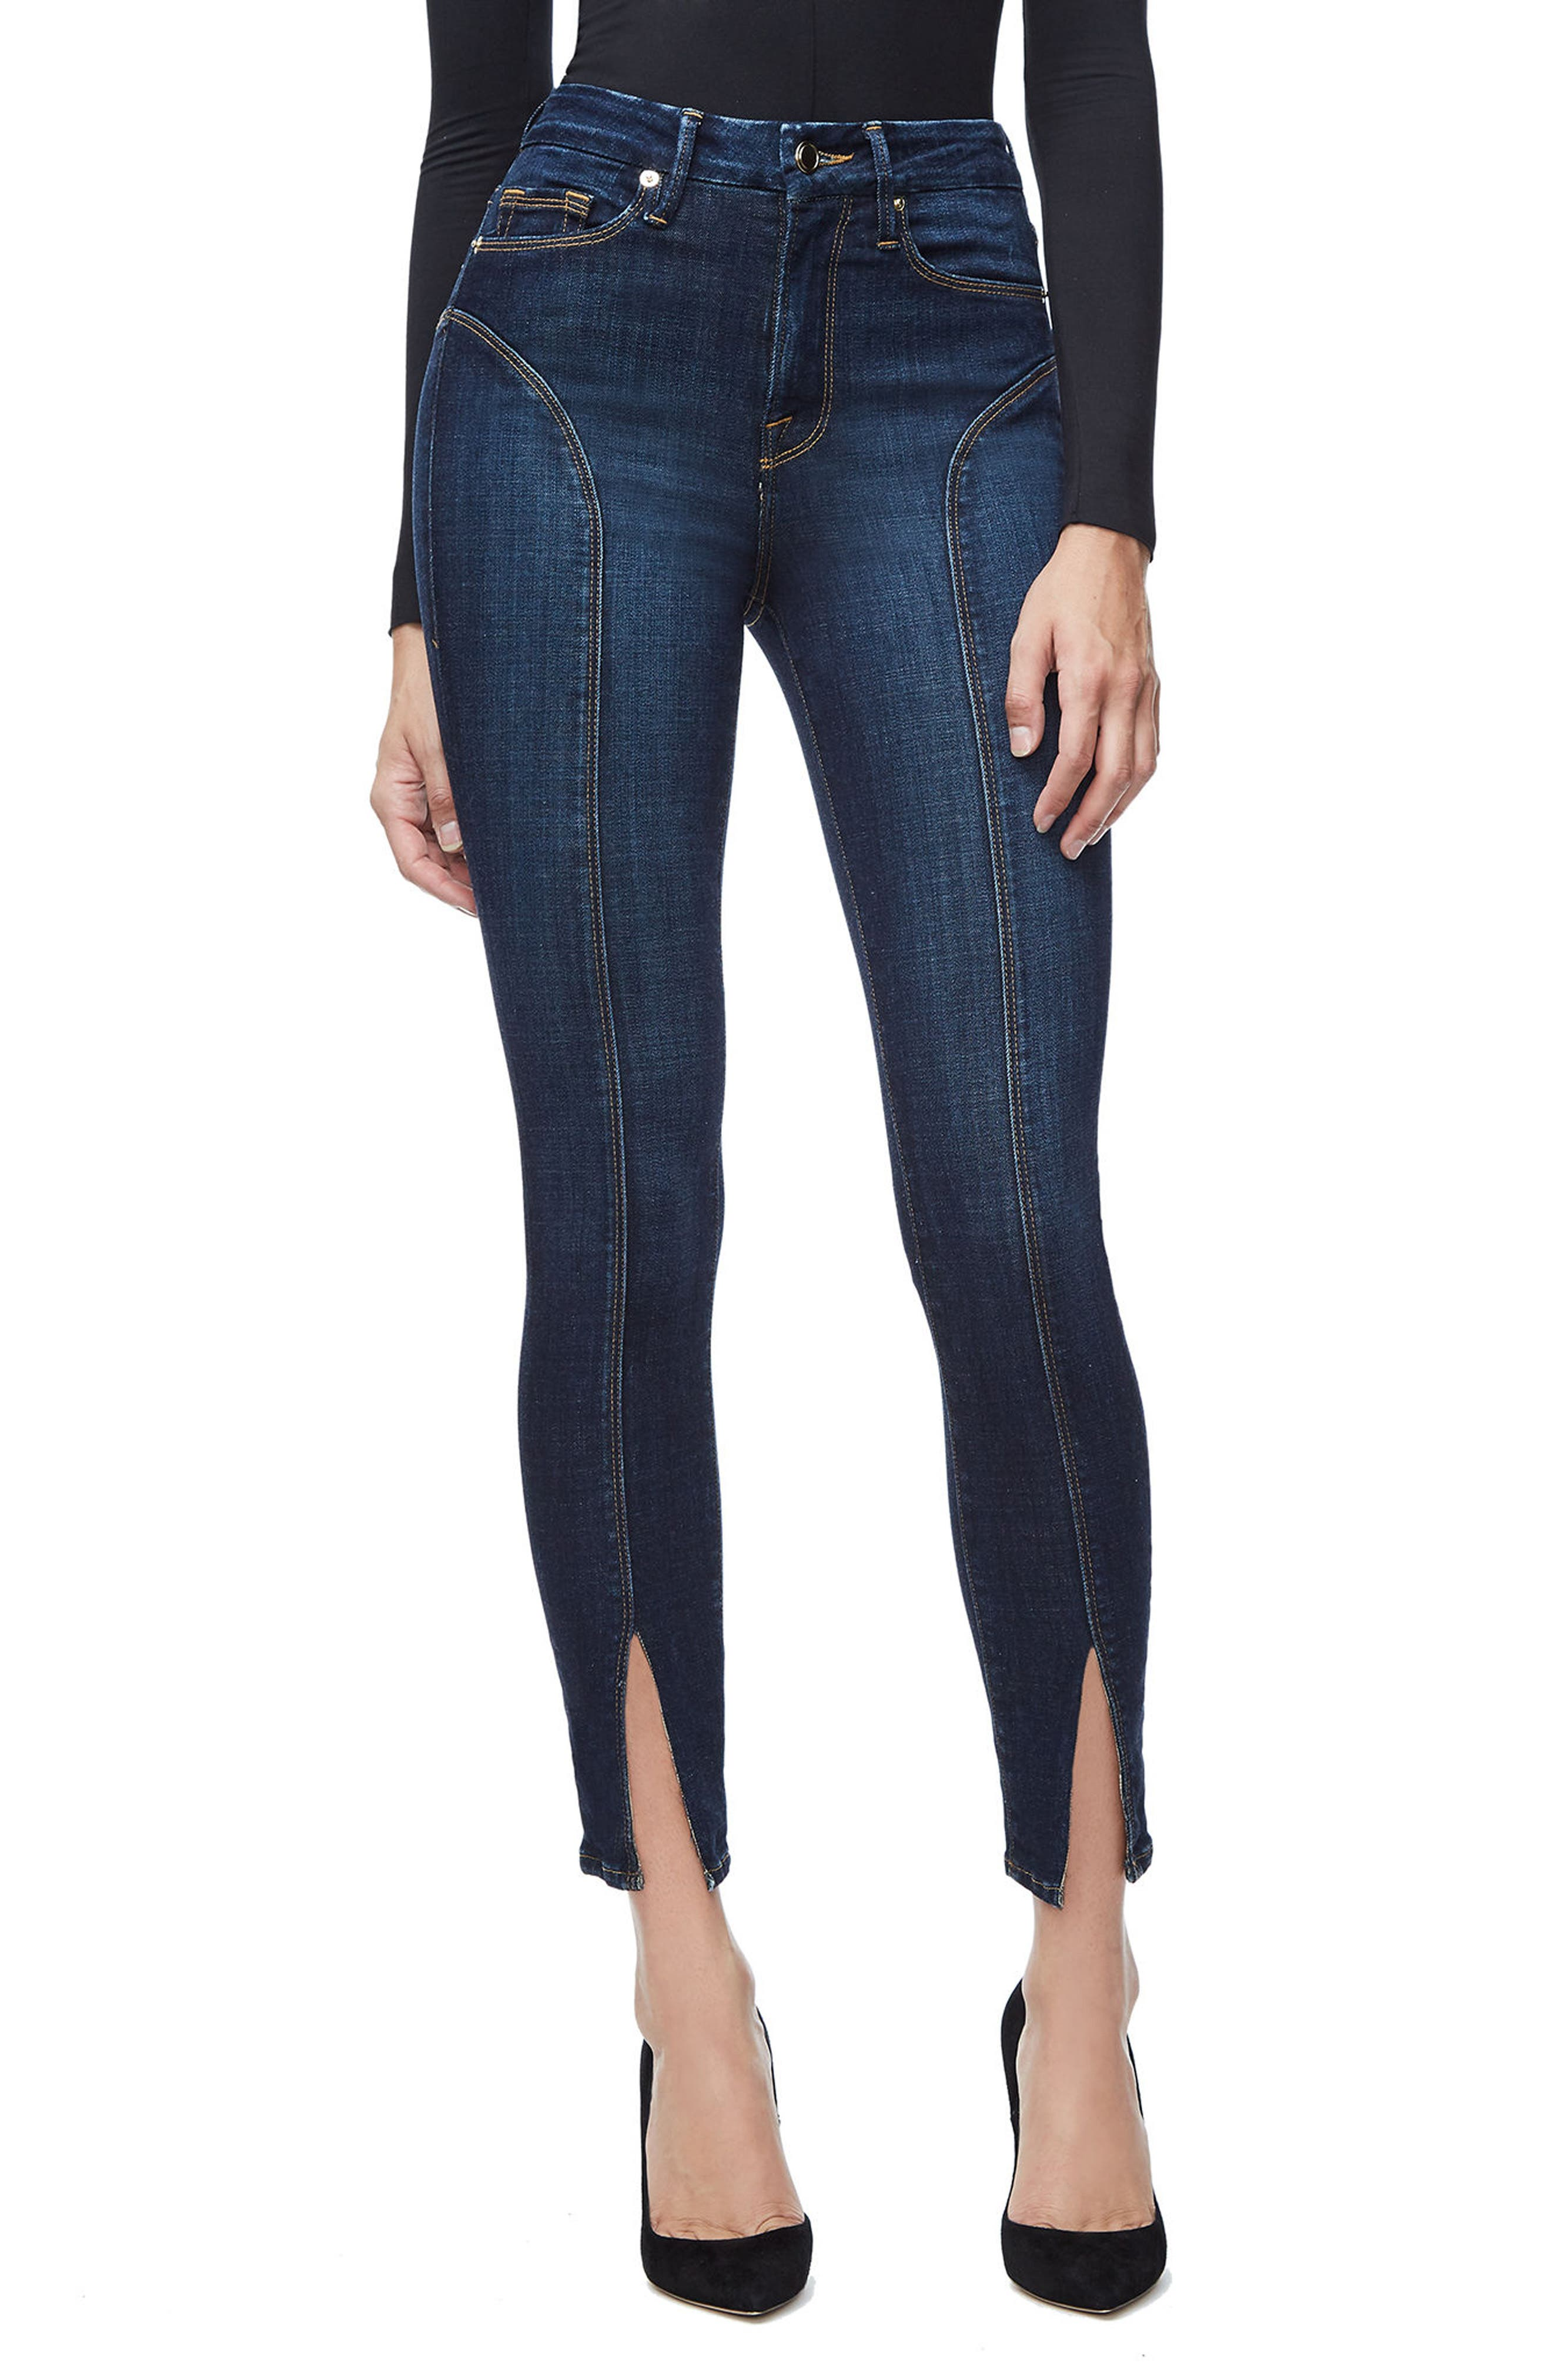 Alternate Image 1 Selected - Good American Good Legs Crop Skinny Jeans (Blue 025) (Regular & Plus Size)